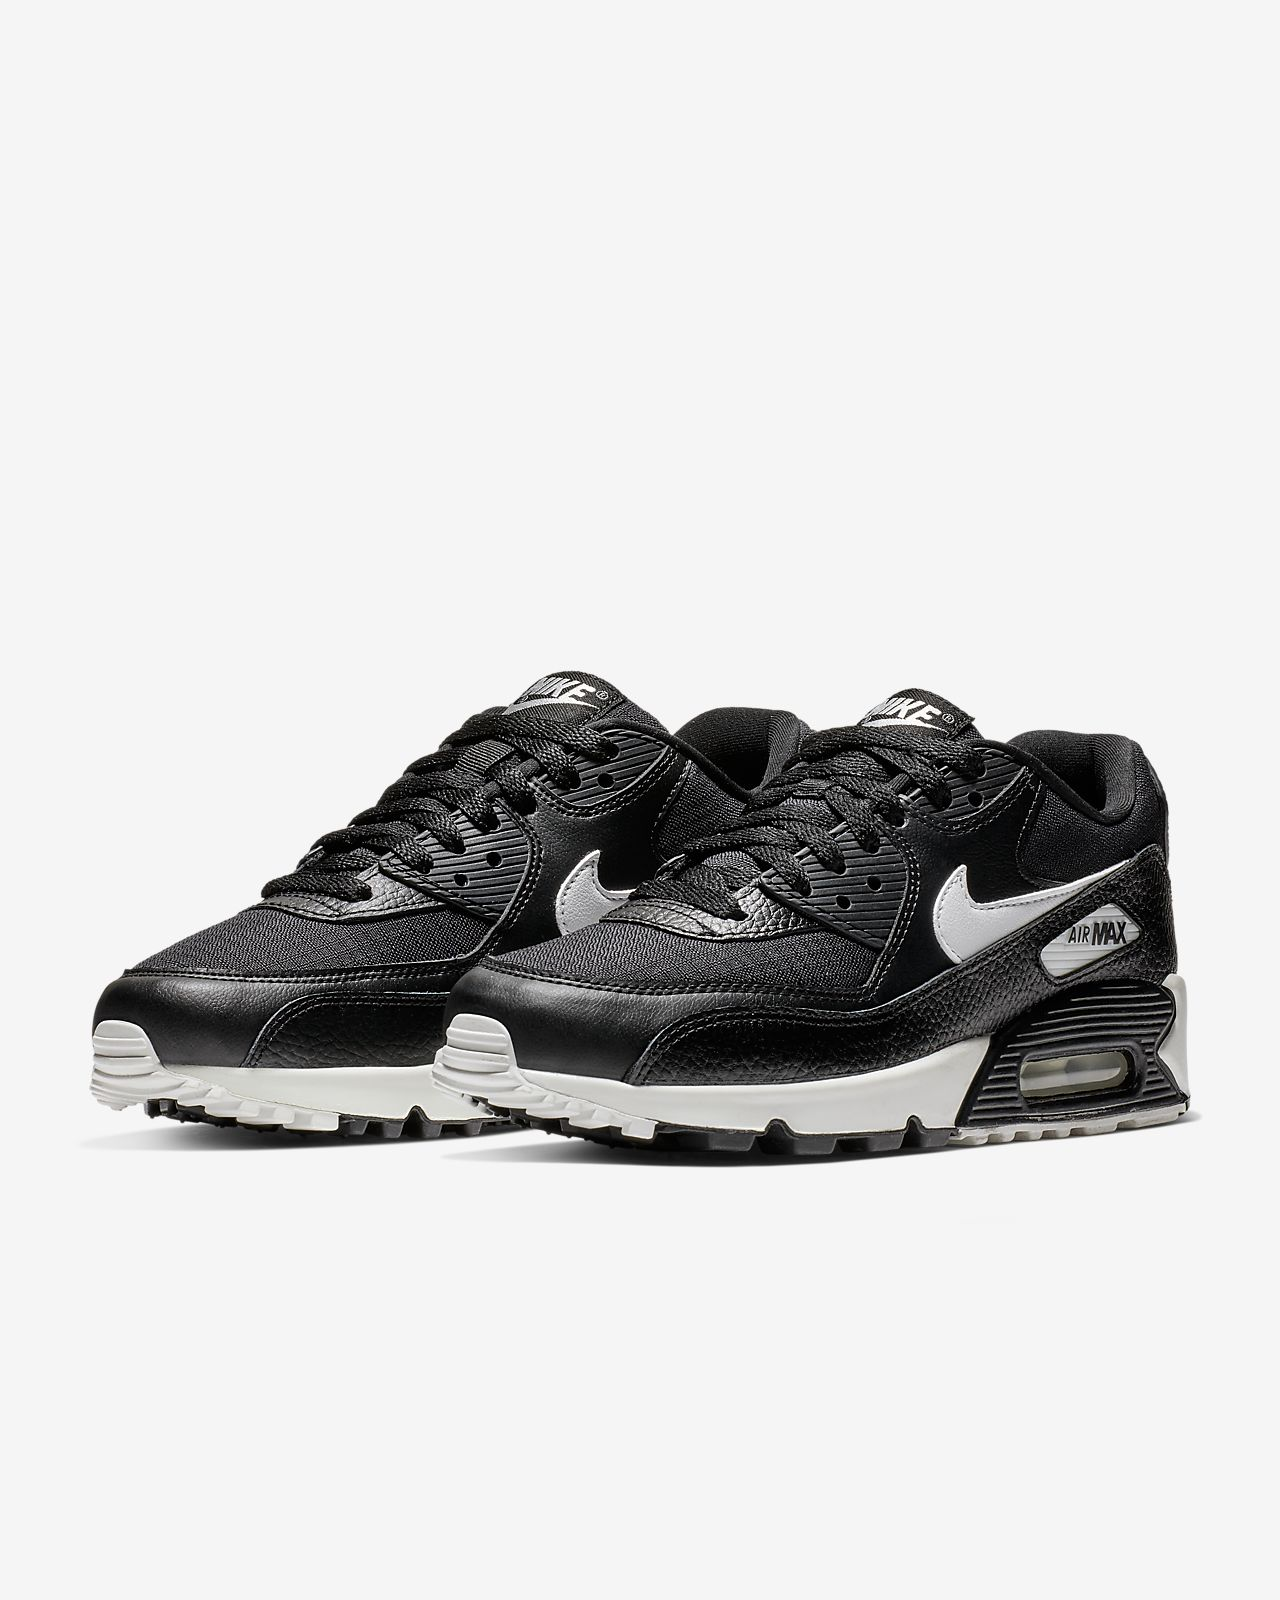 on sale 1f57d 527b0 ... Nike Air Max 90 Womens Shoe